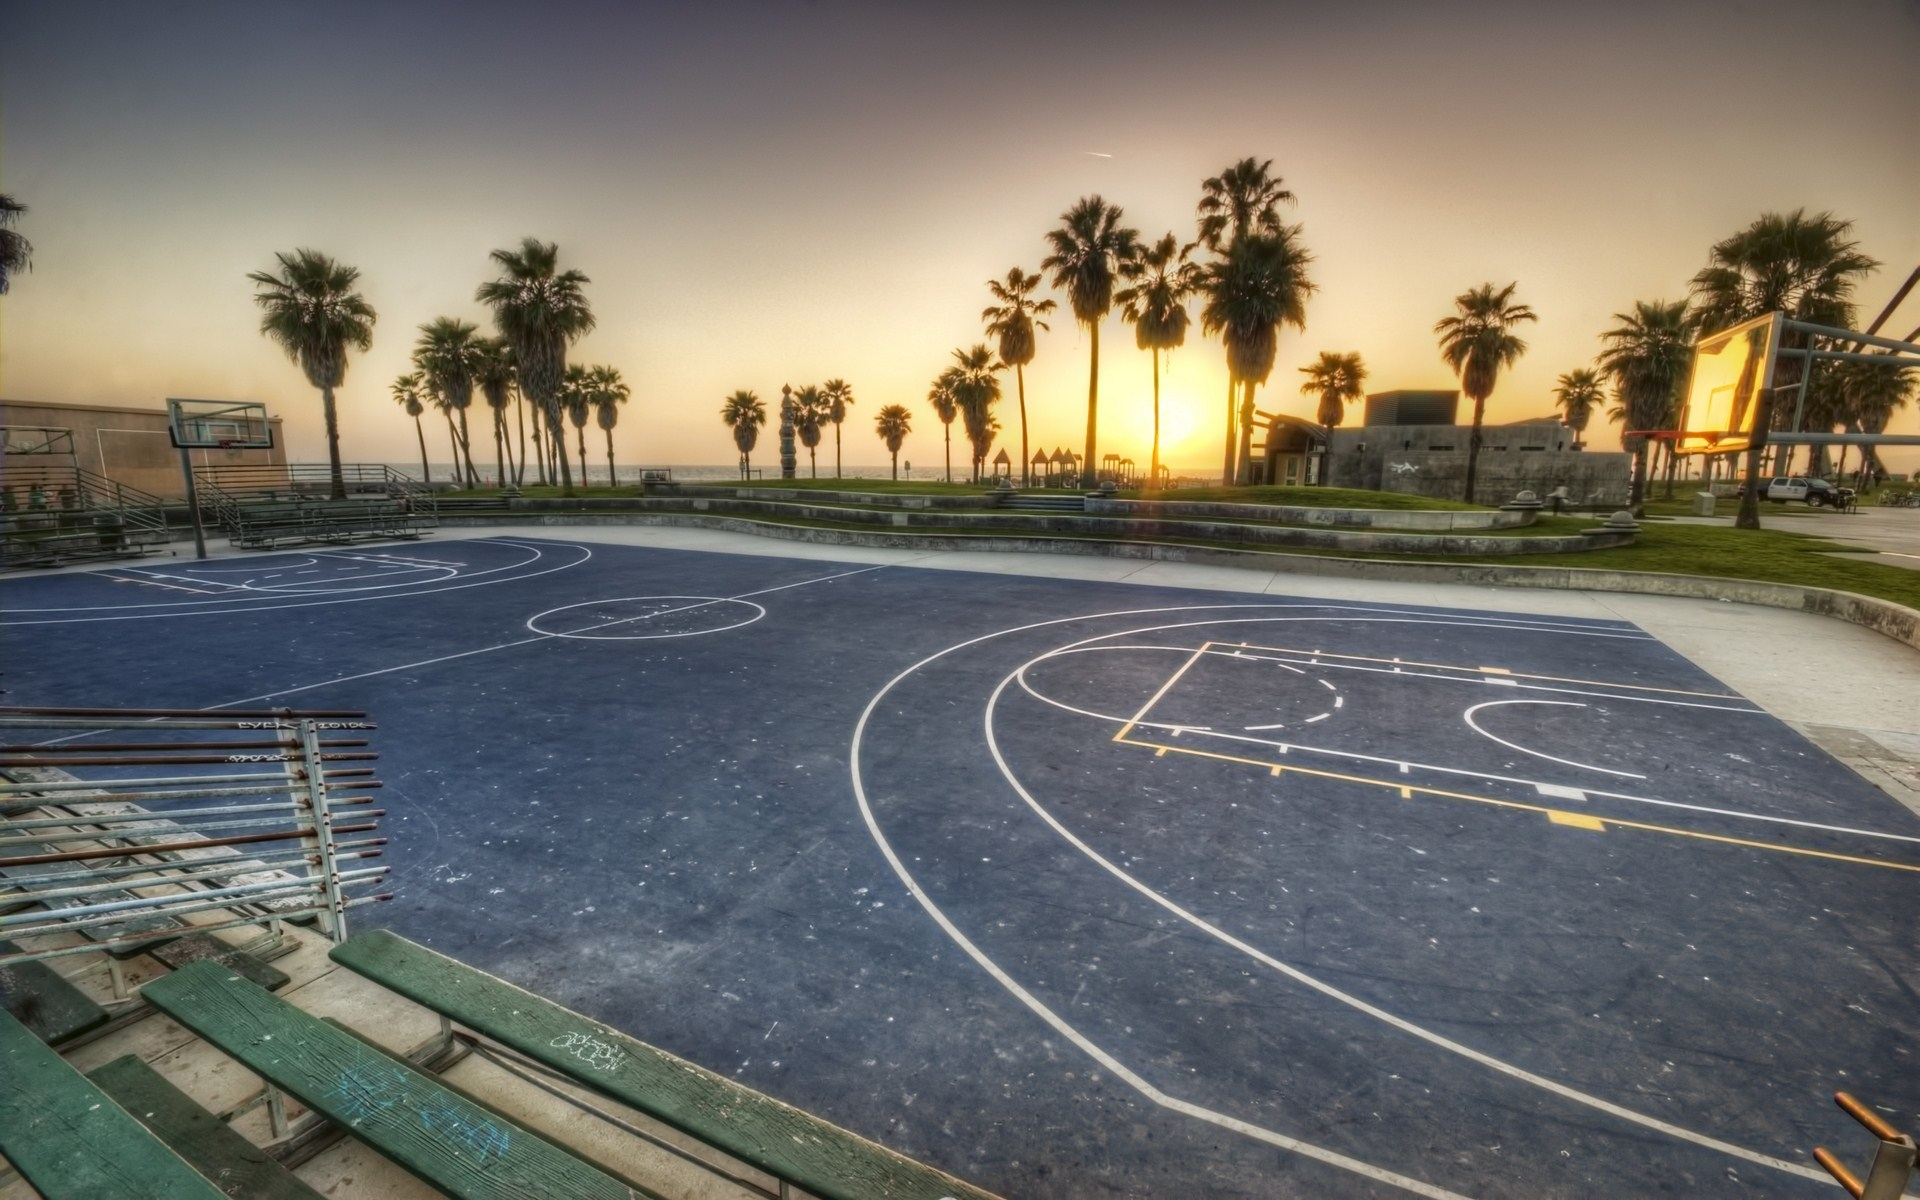 Download Venice beach ca sunset basketball los angeles california 1920x1200